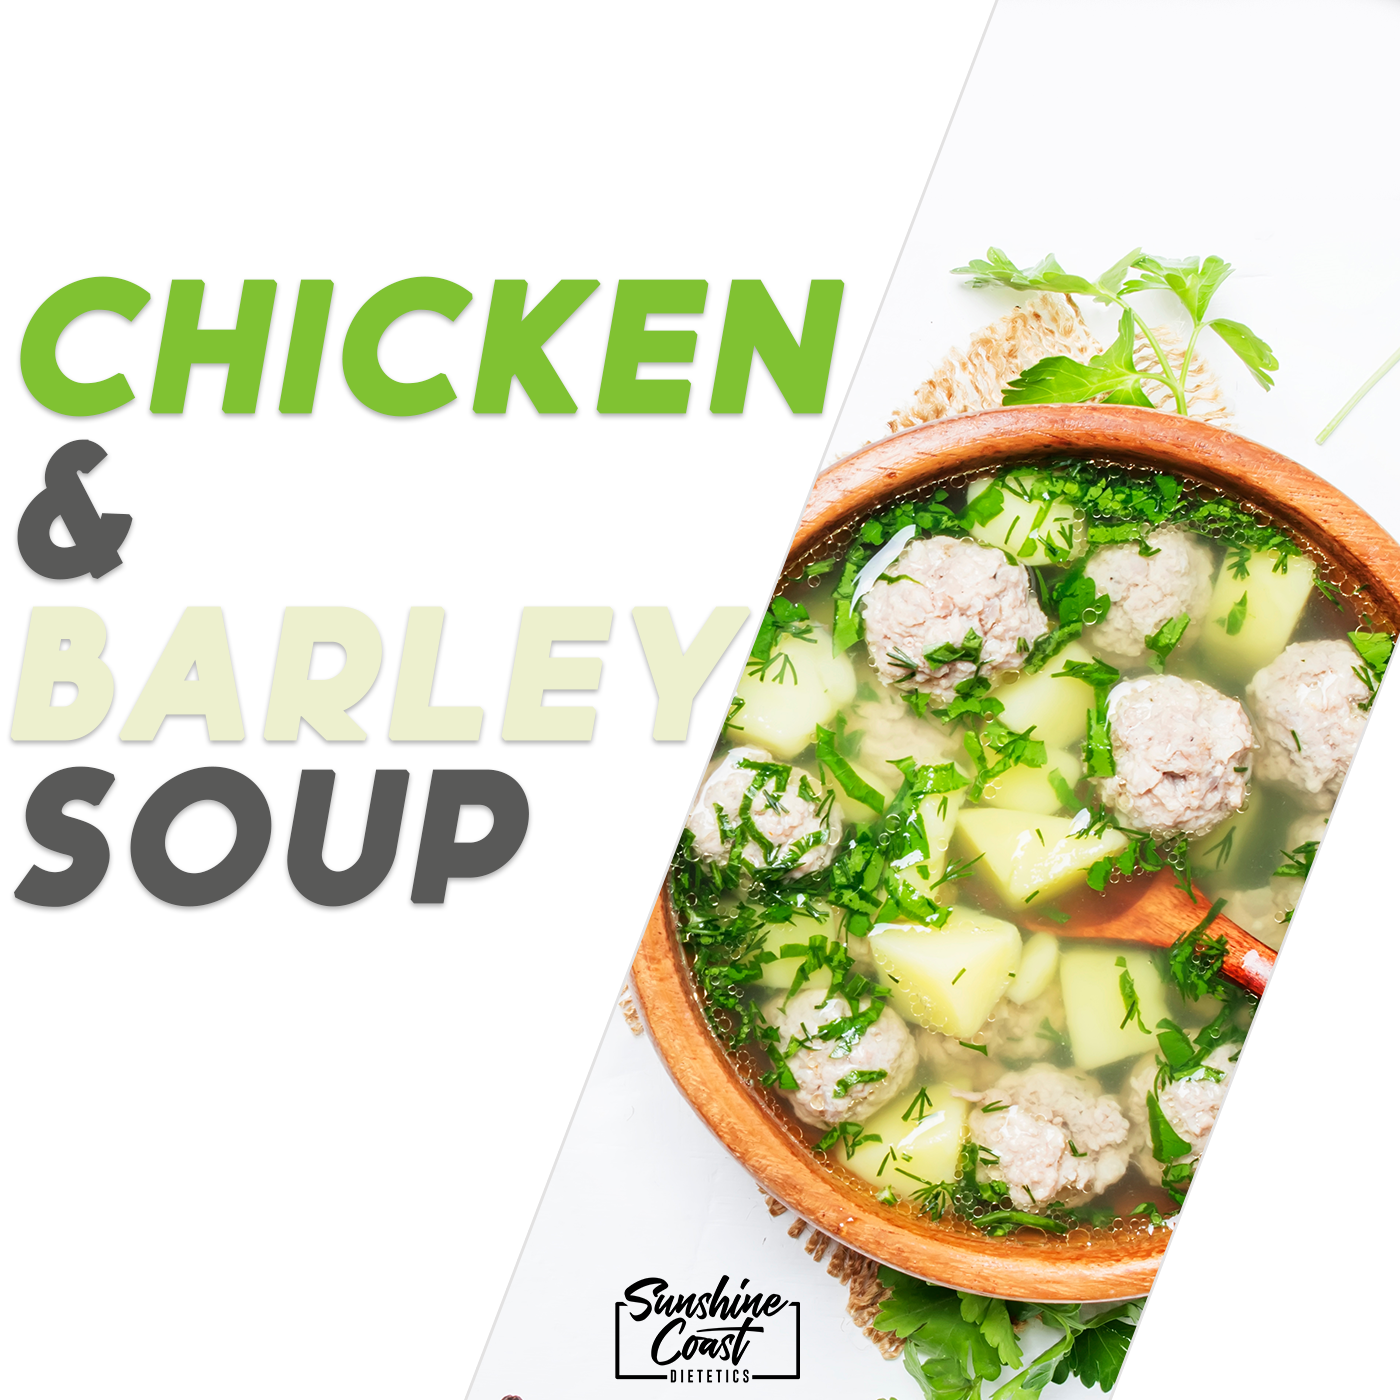 Recipe: Chicken & Barley Soup